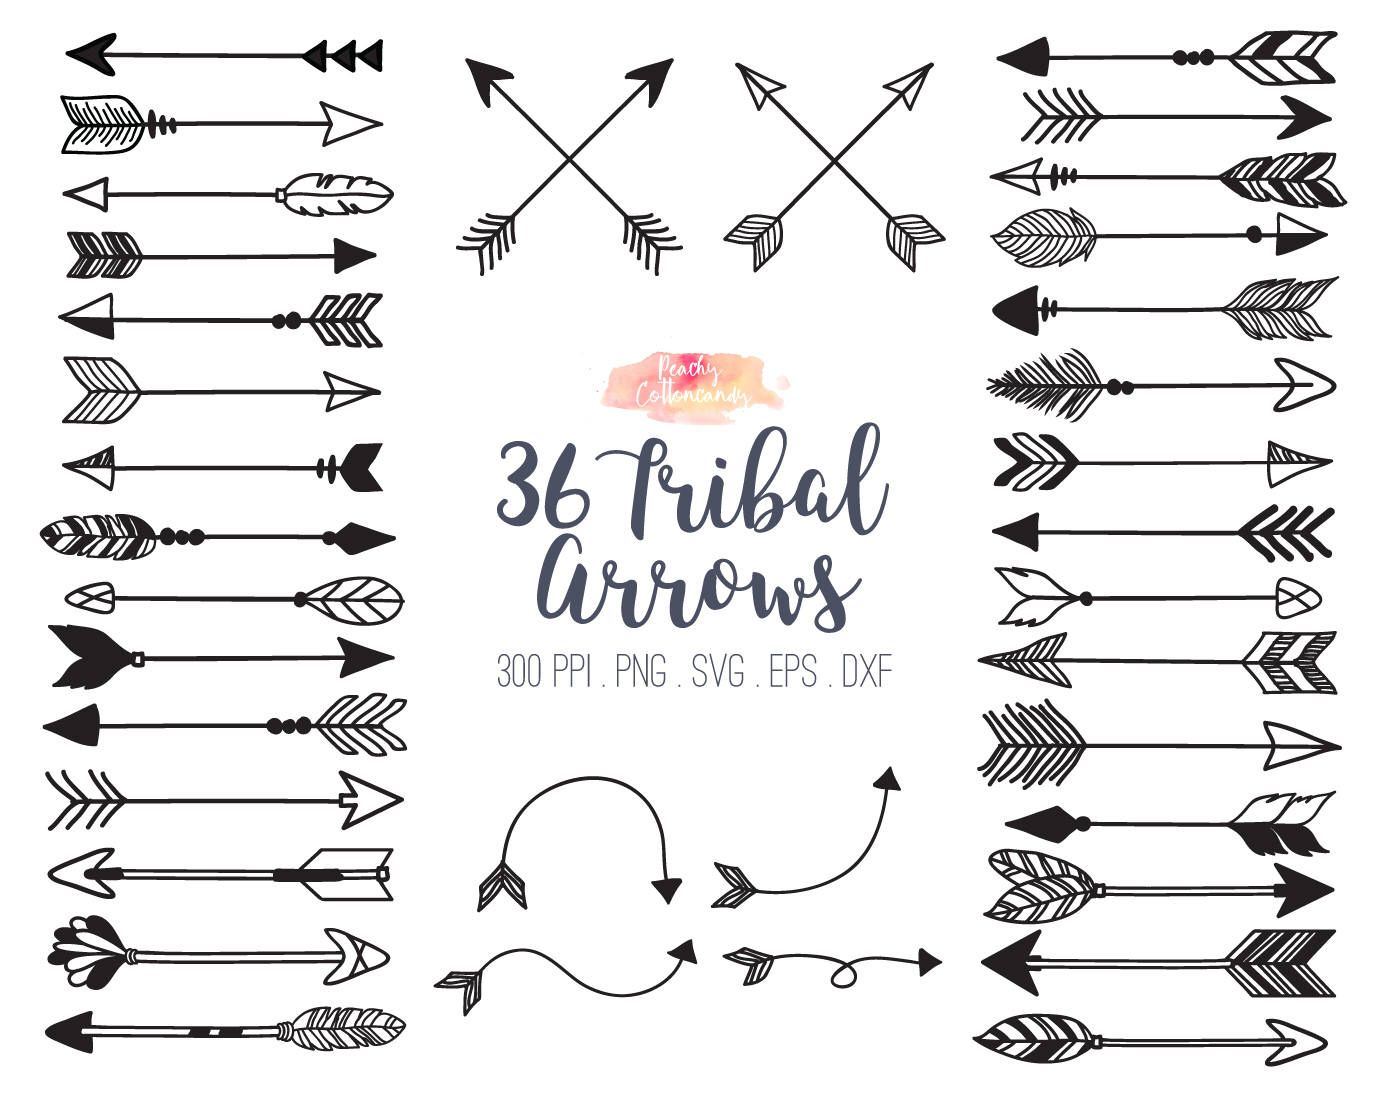 graphic freeuse Buy get tribal arrow. Clipart arrows free